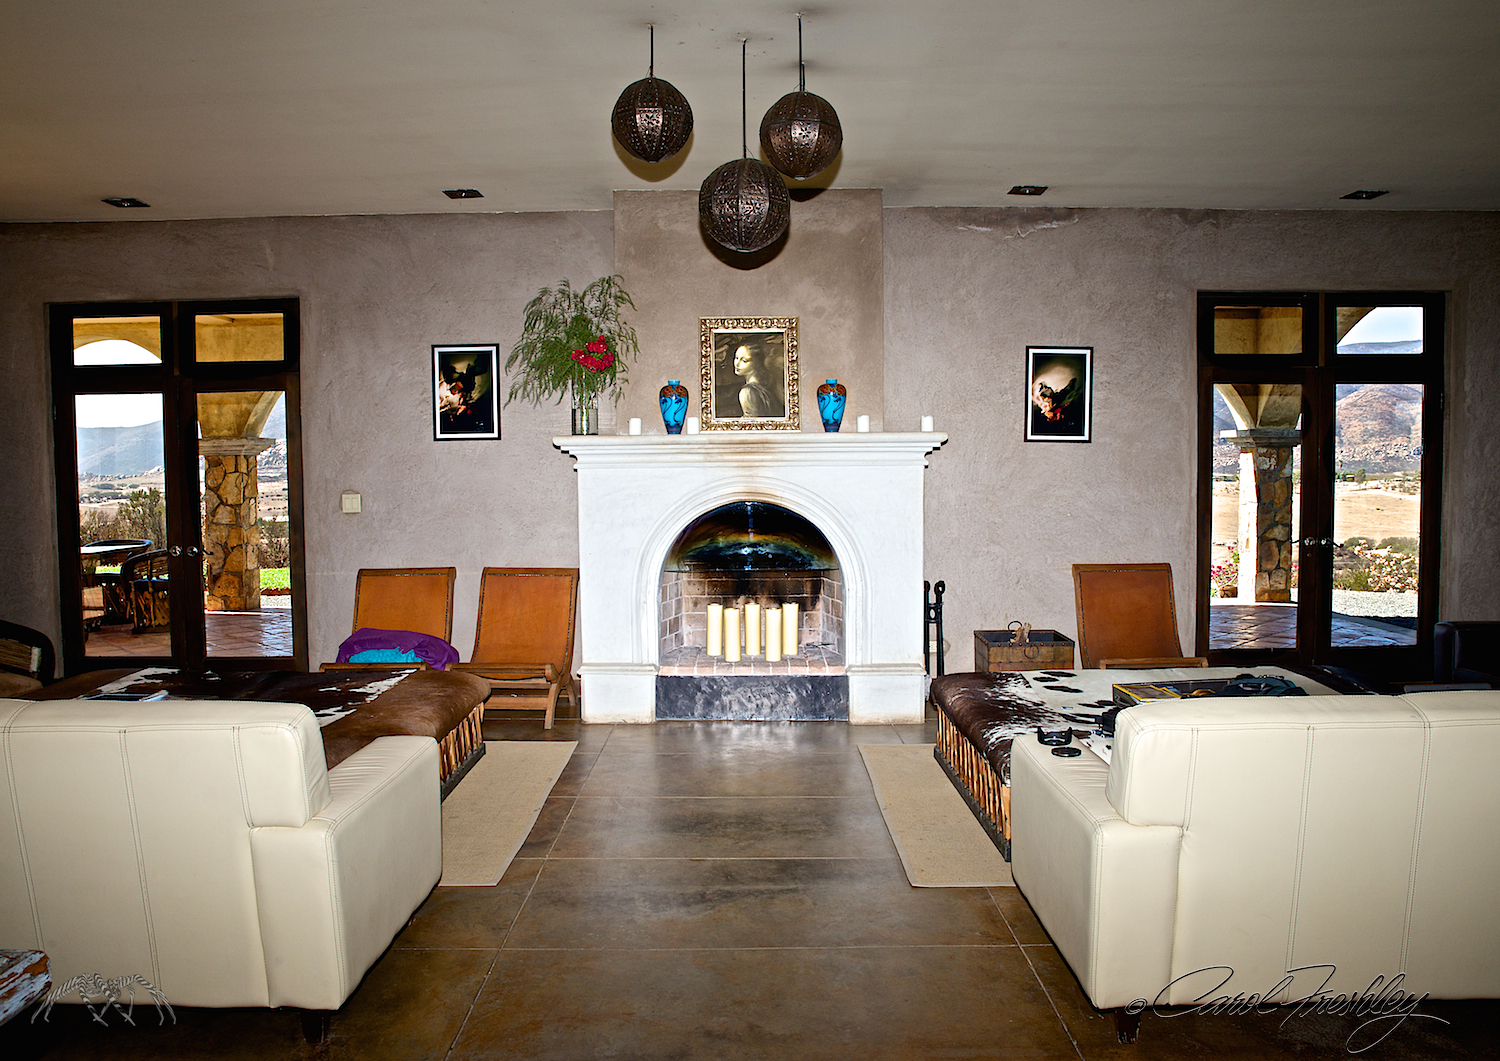 The fireplace would be an excellent alternative if the outside patio is too cold on the wedding day.